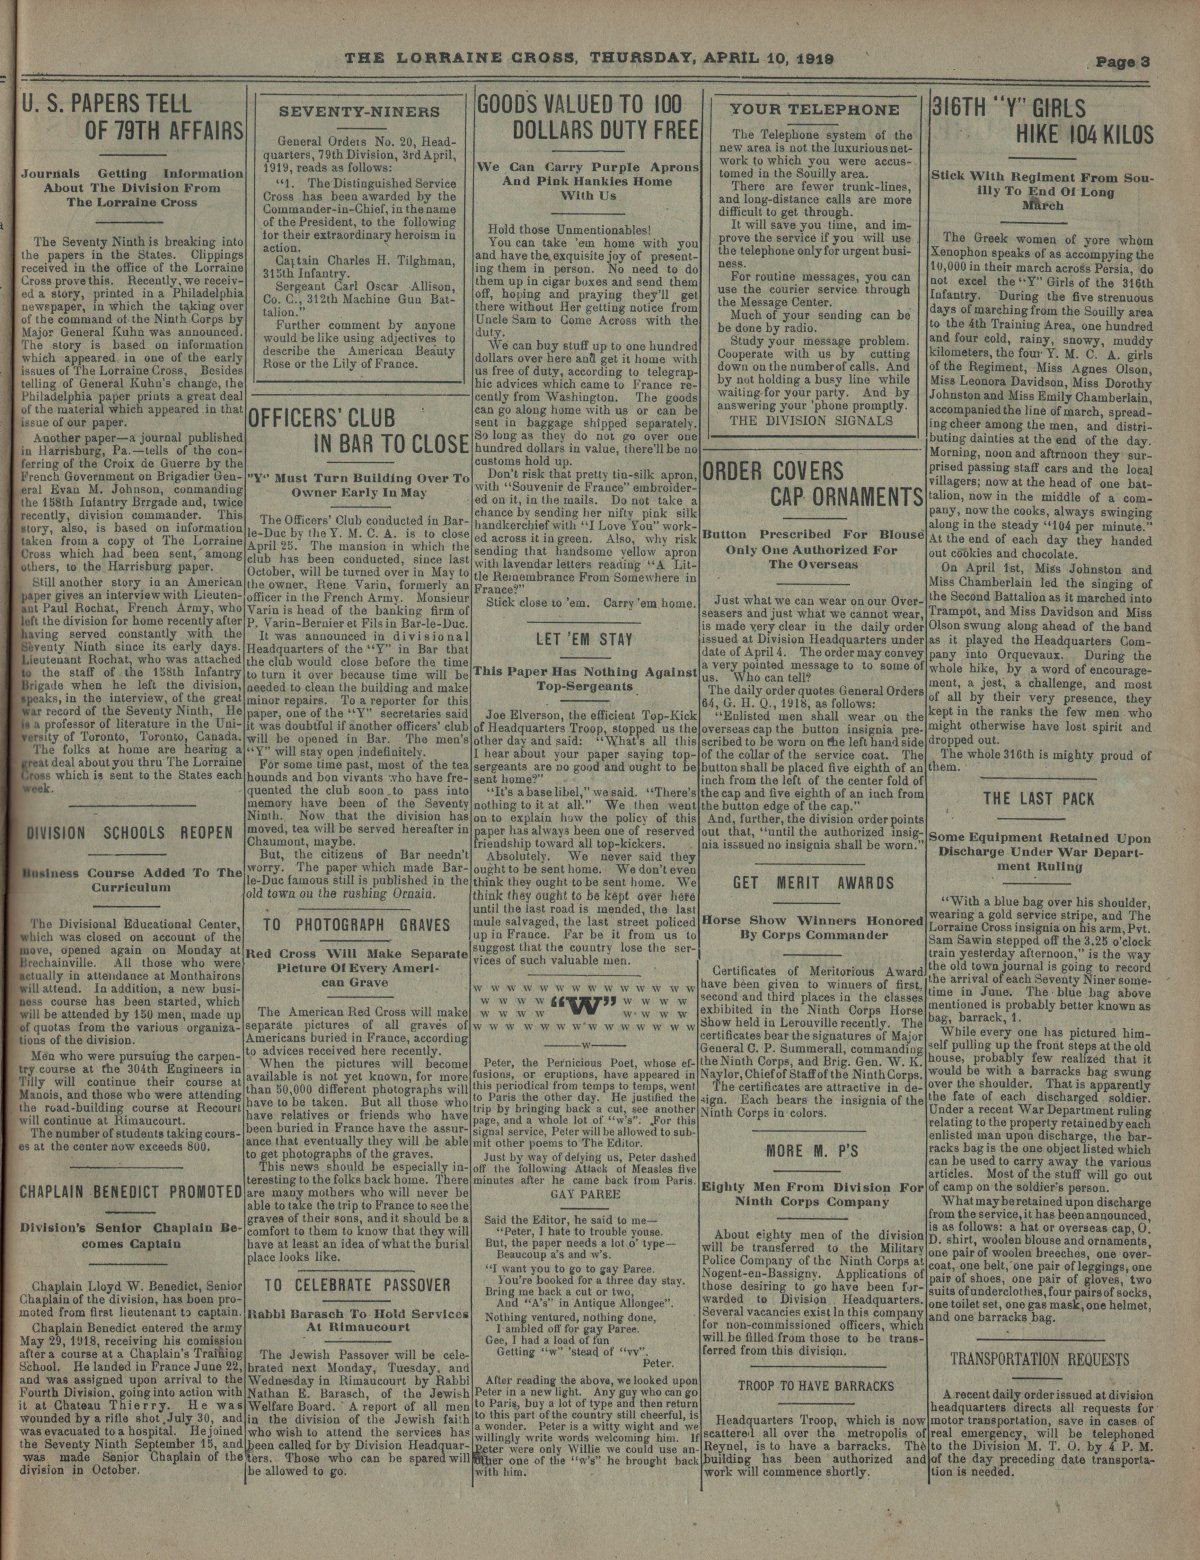 Lorraine Cross Newspaper Volume 1 Number 5 France April 10 1919 Page 3